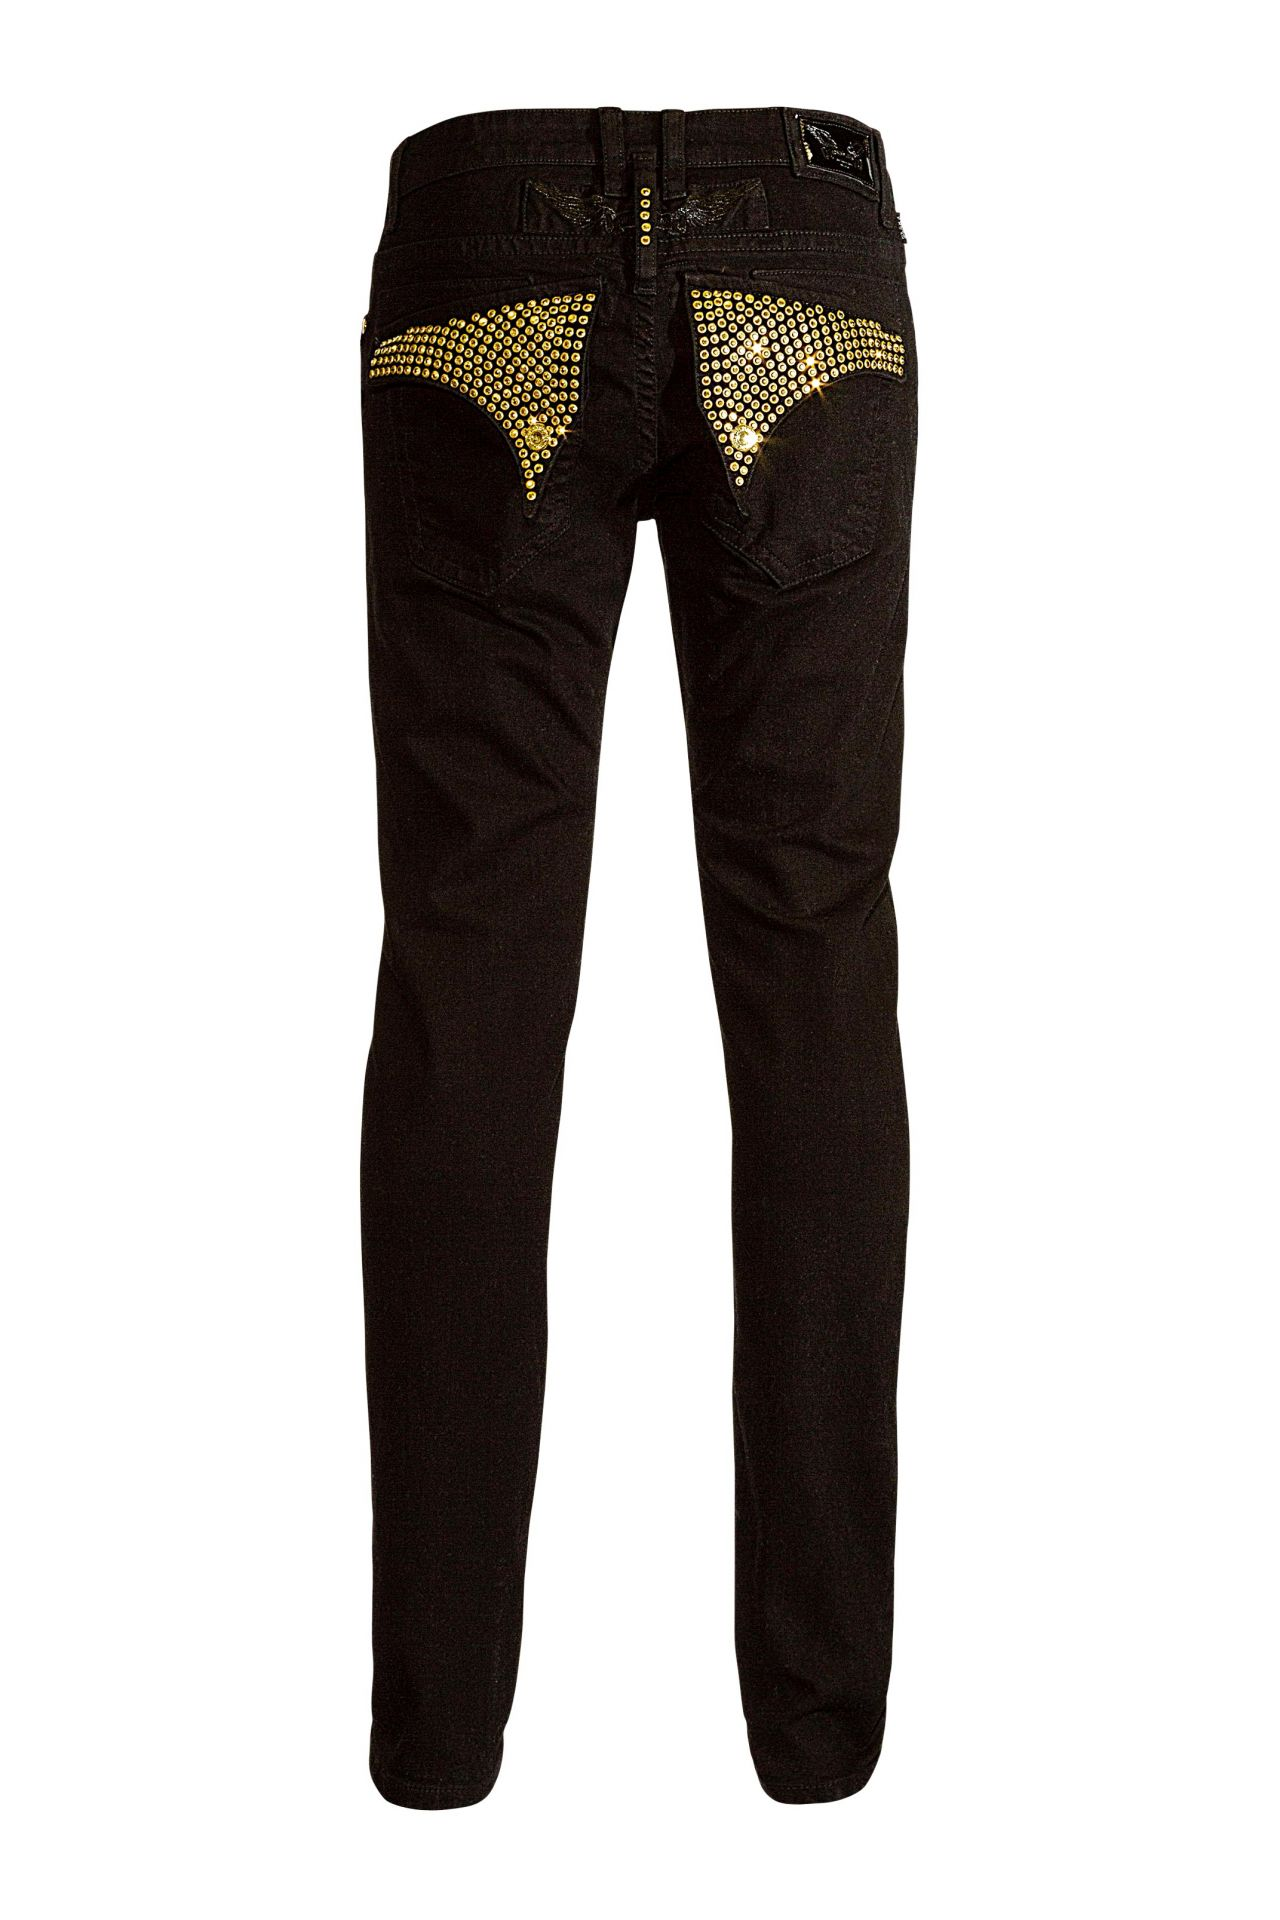 LONG FLAP SKINNY IN PURE BLACK WITH GOLD SW